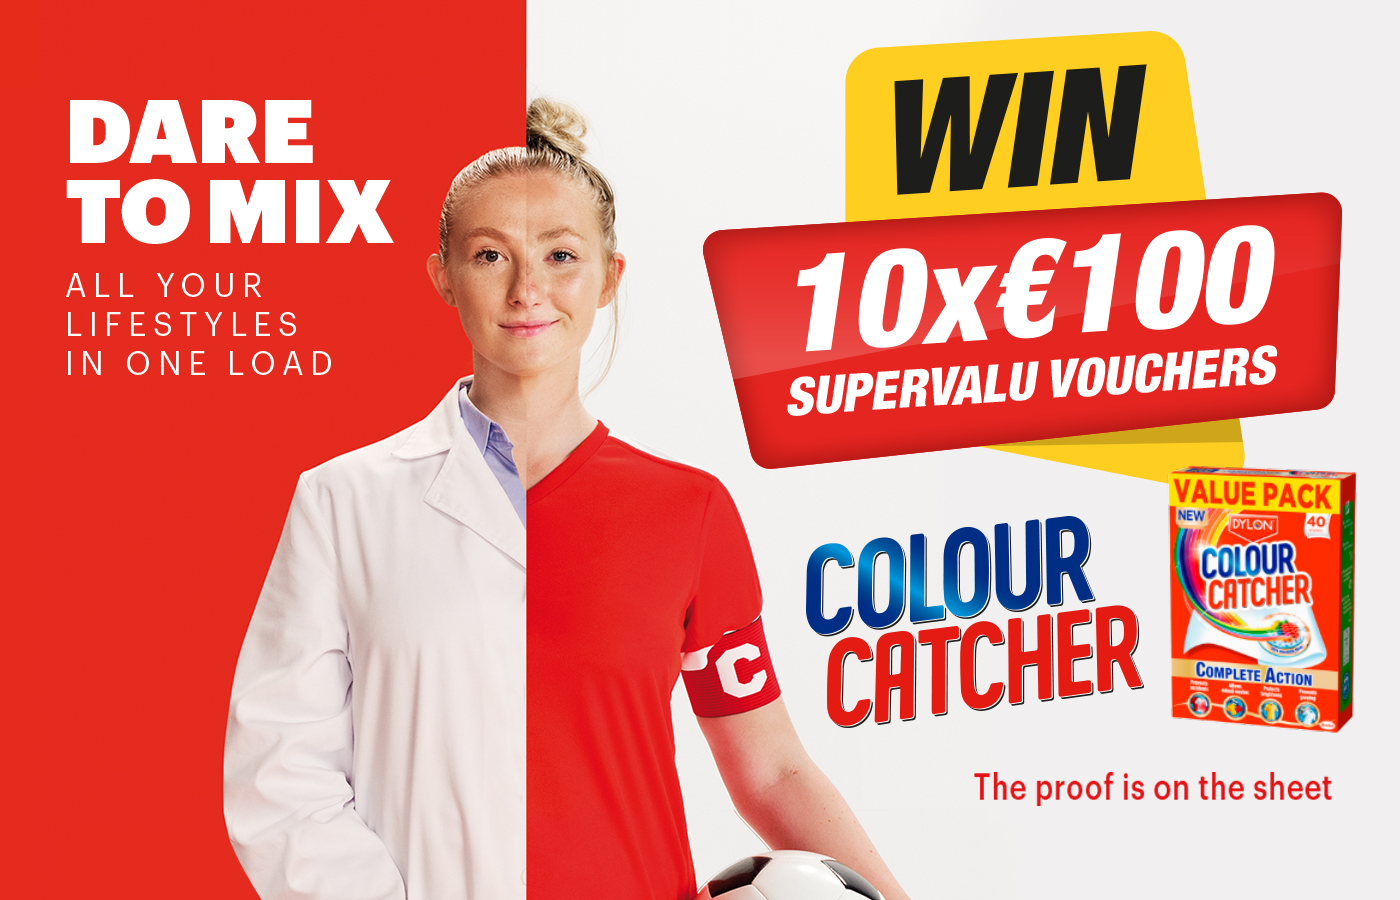 Win 1 of 10 SuperValu shopping vouchers with Colour Catcher